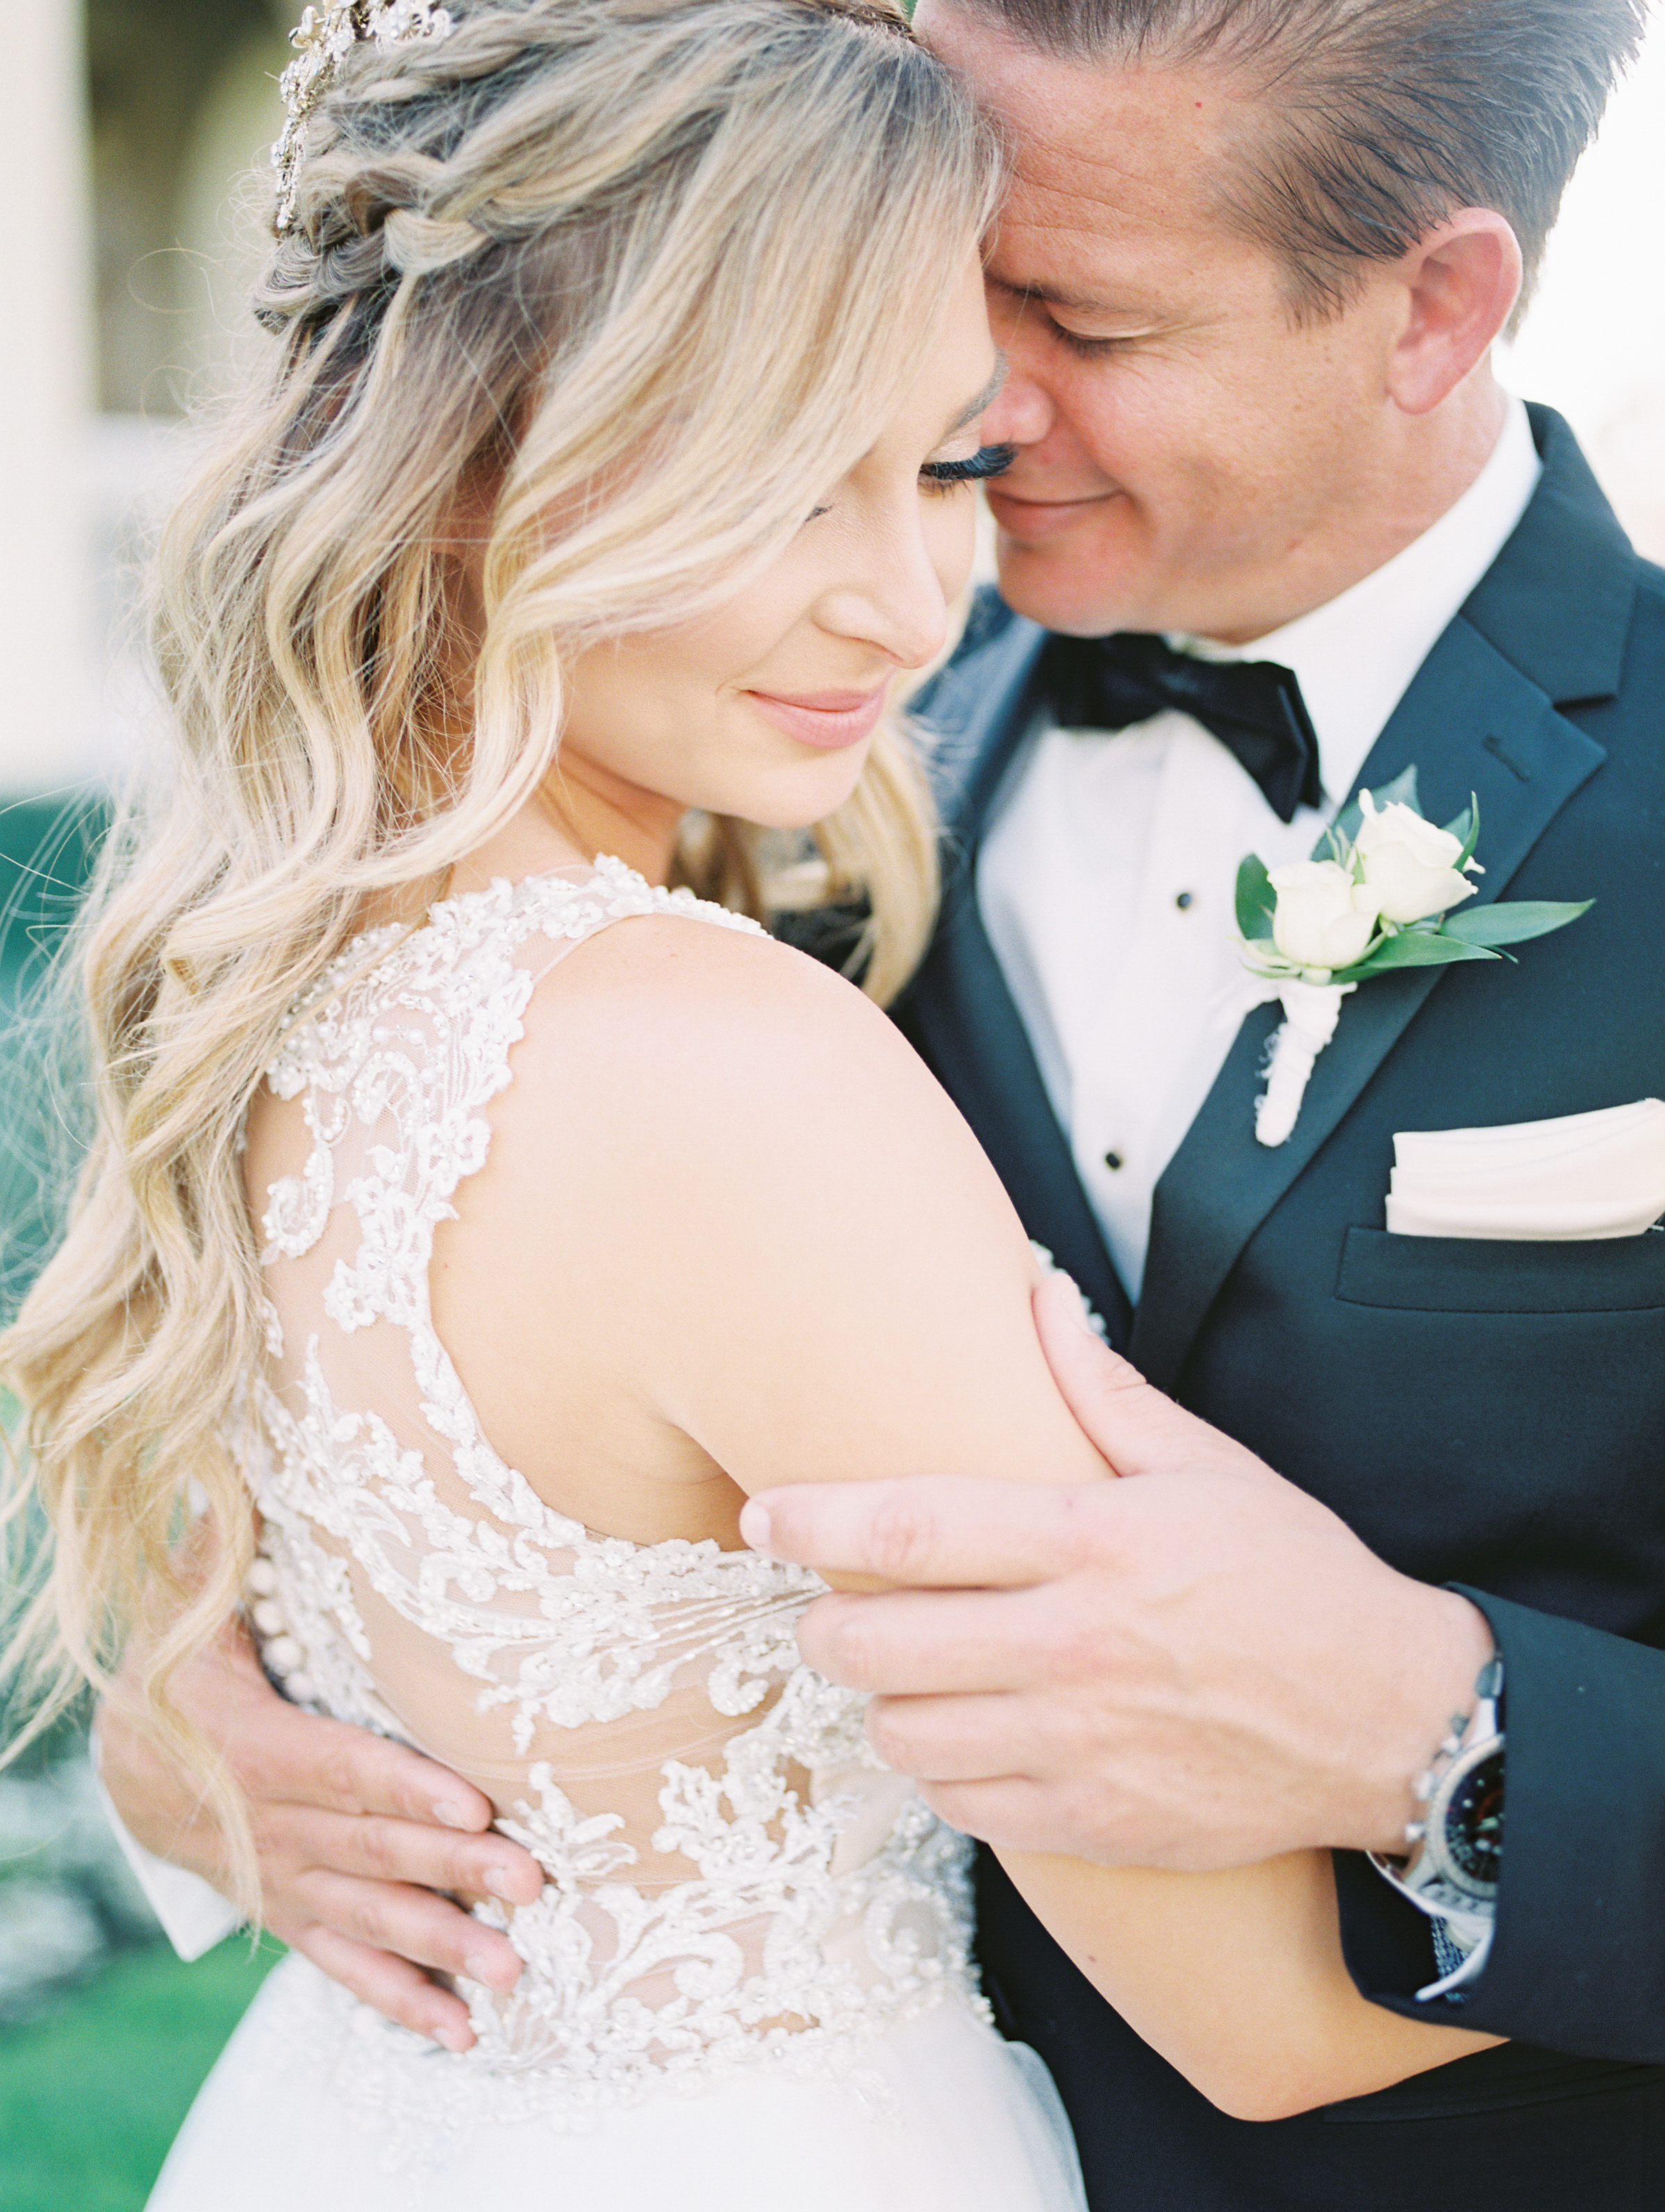 bridal beauty-san diego-san juan capistrano-thevanitybelle.com-blonde curls-wedding day-wedding hair stylist-wedding inspirations